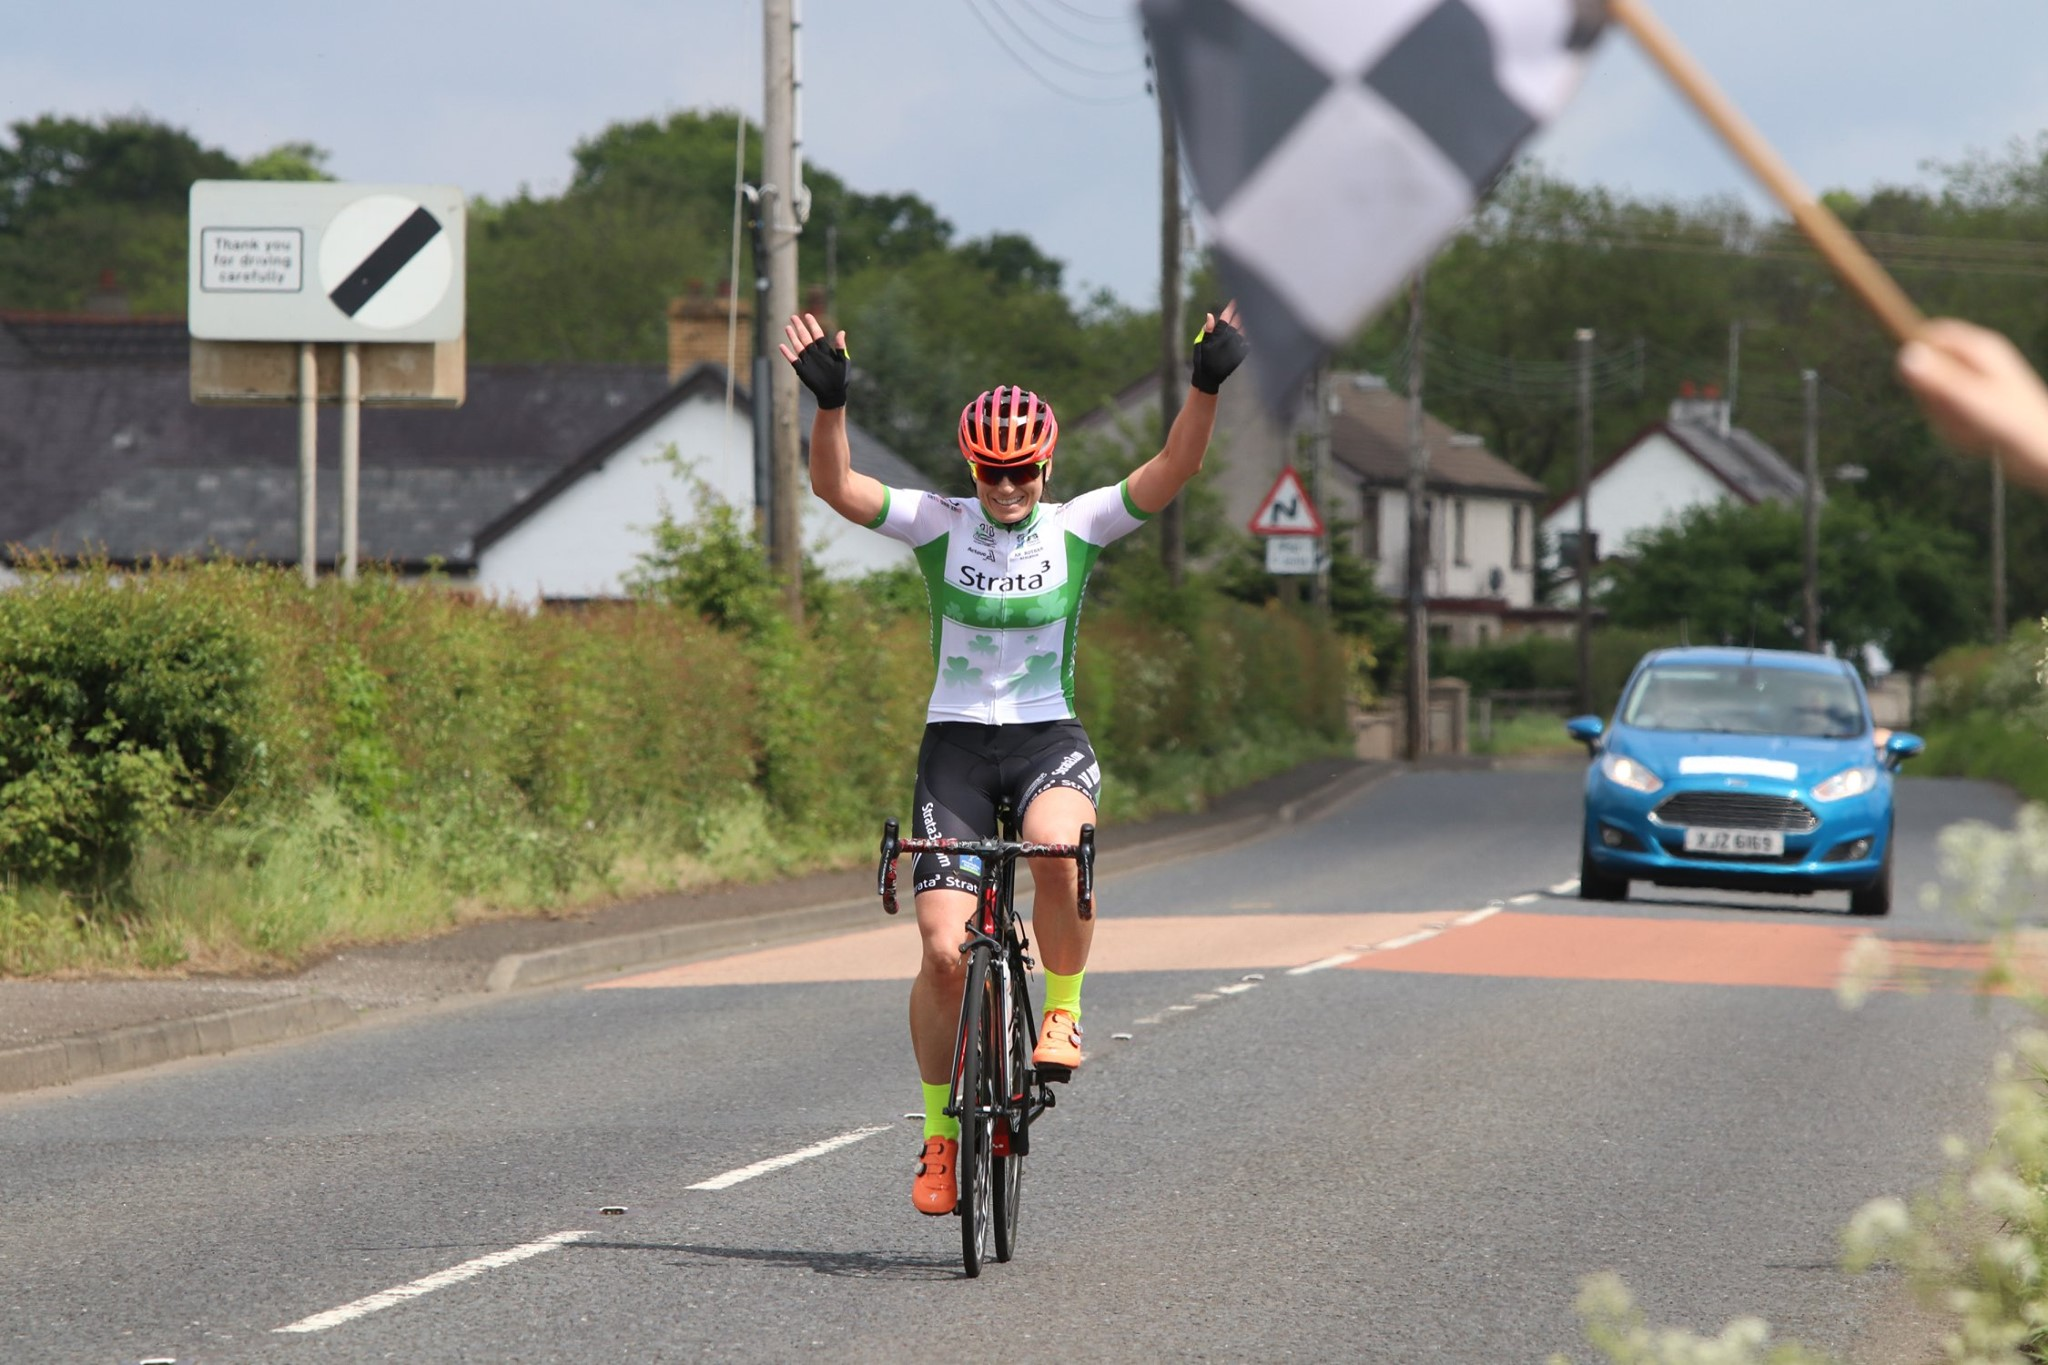 Eve McCrystal wins Red Hand Trophy in Ballymena - Sticky Bottle